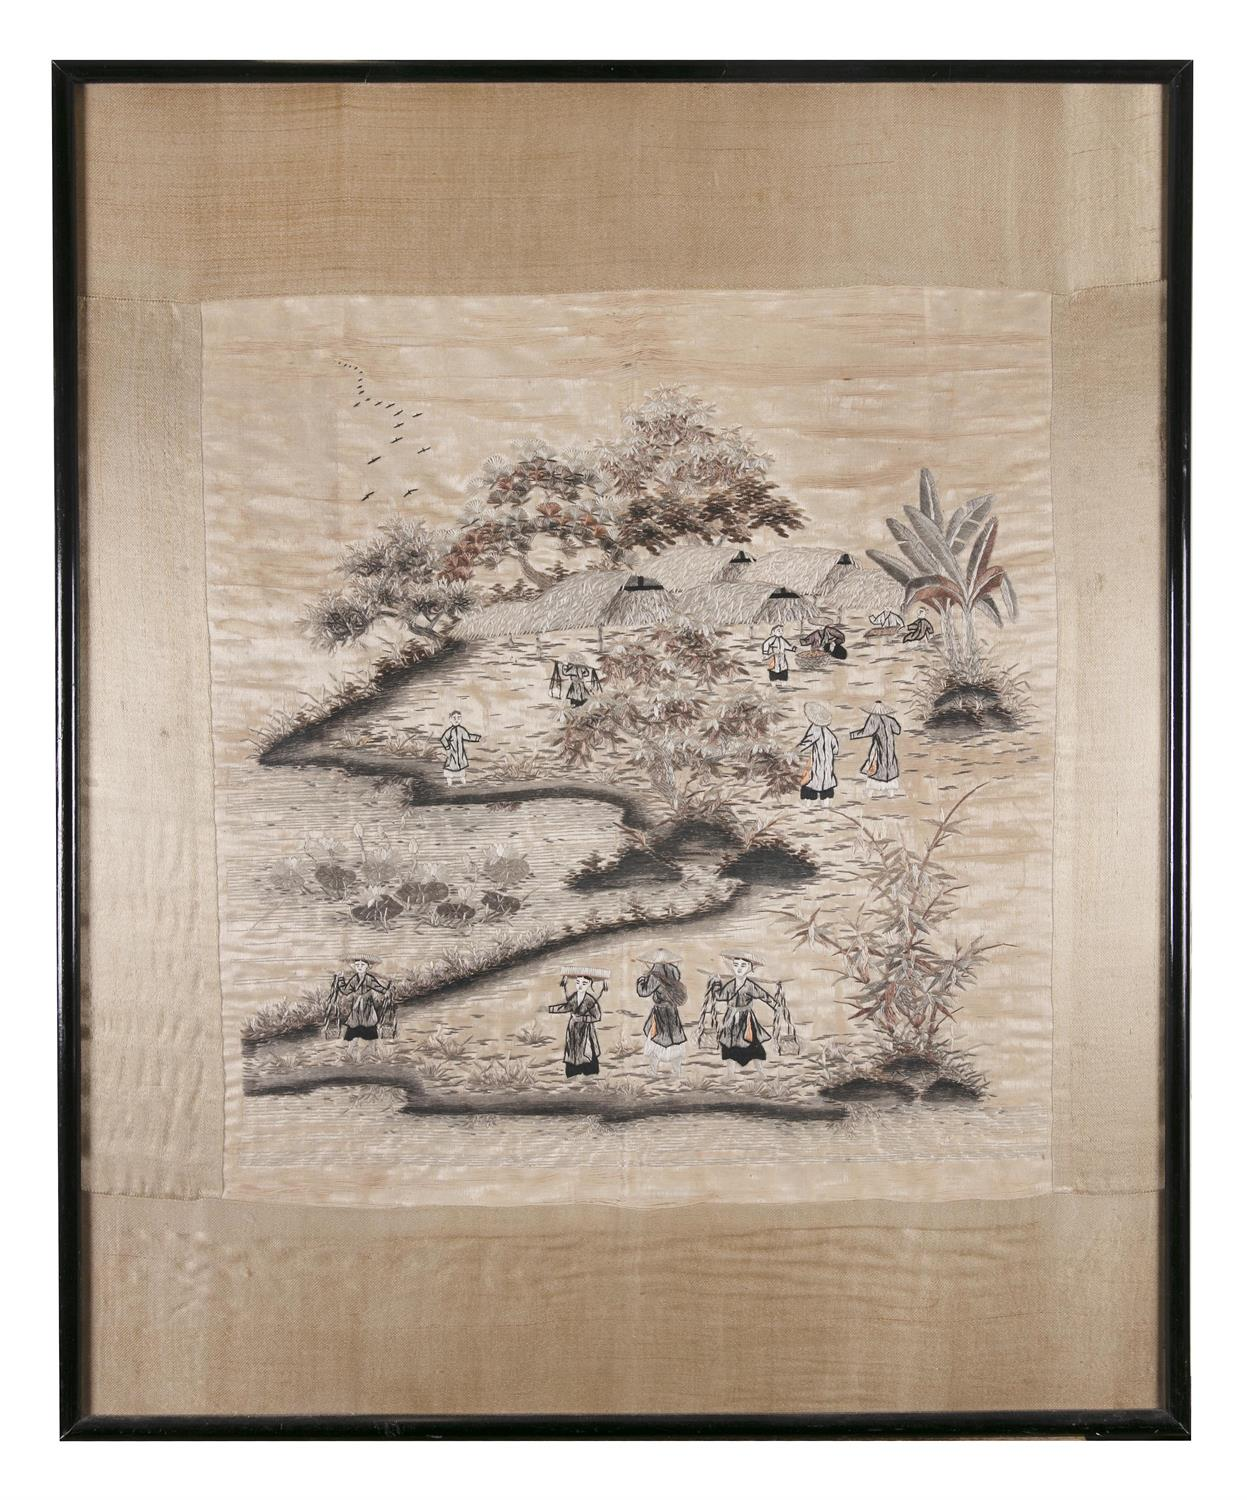 A 'PROCESSION' EMBROIDERED SILK PANEL Vietnam / Indochina, 20th century 48,5 x 46 cm TRANH LỤA - Image 5 of 6